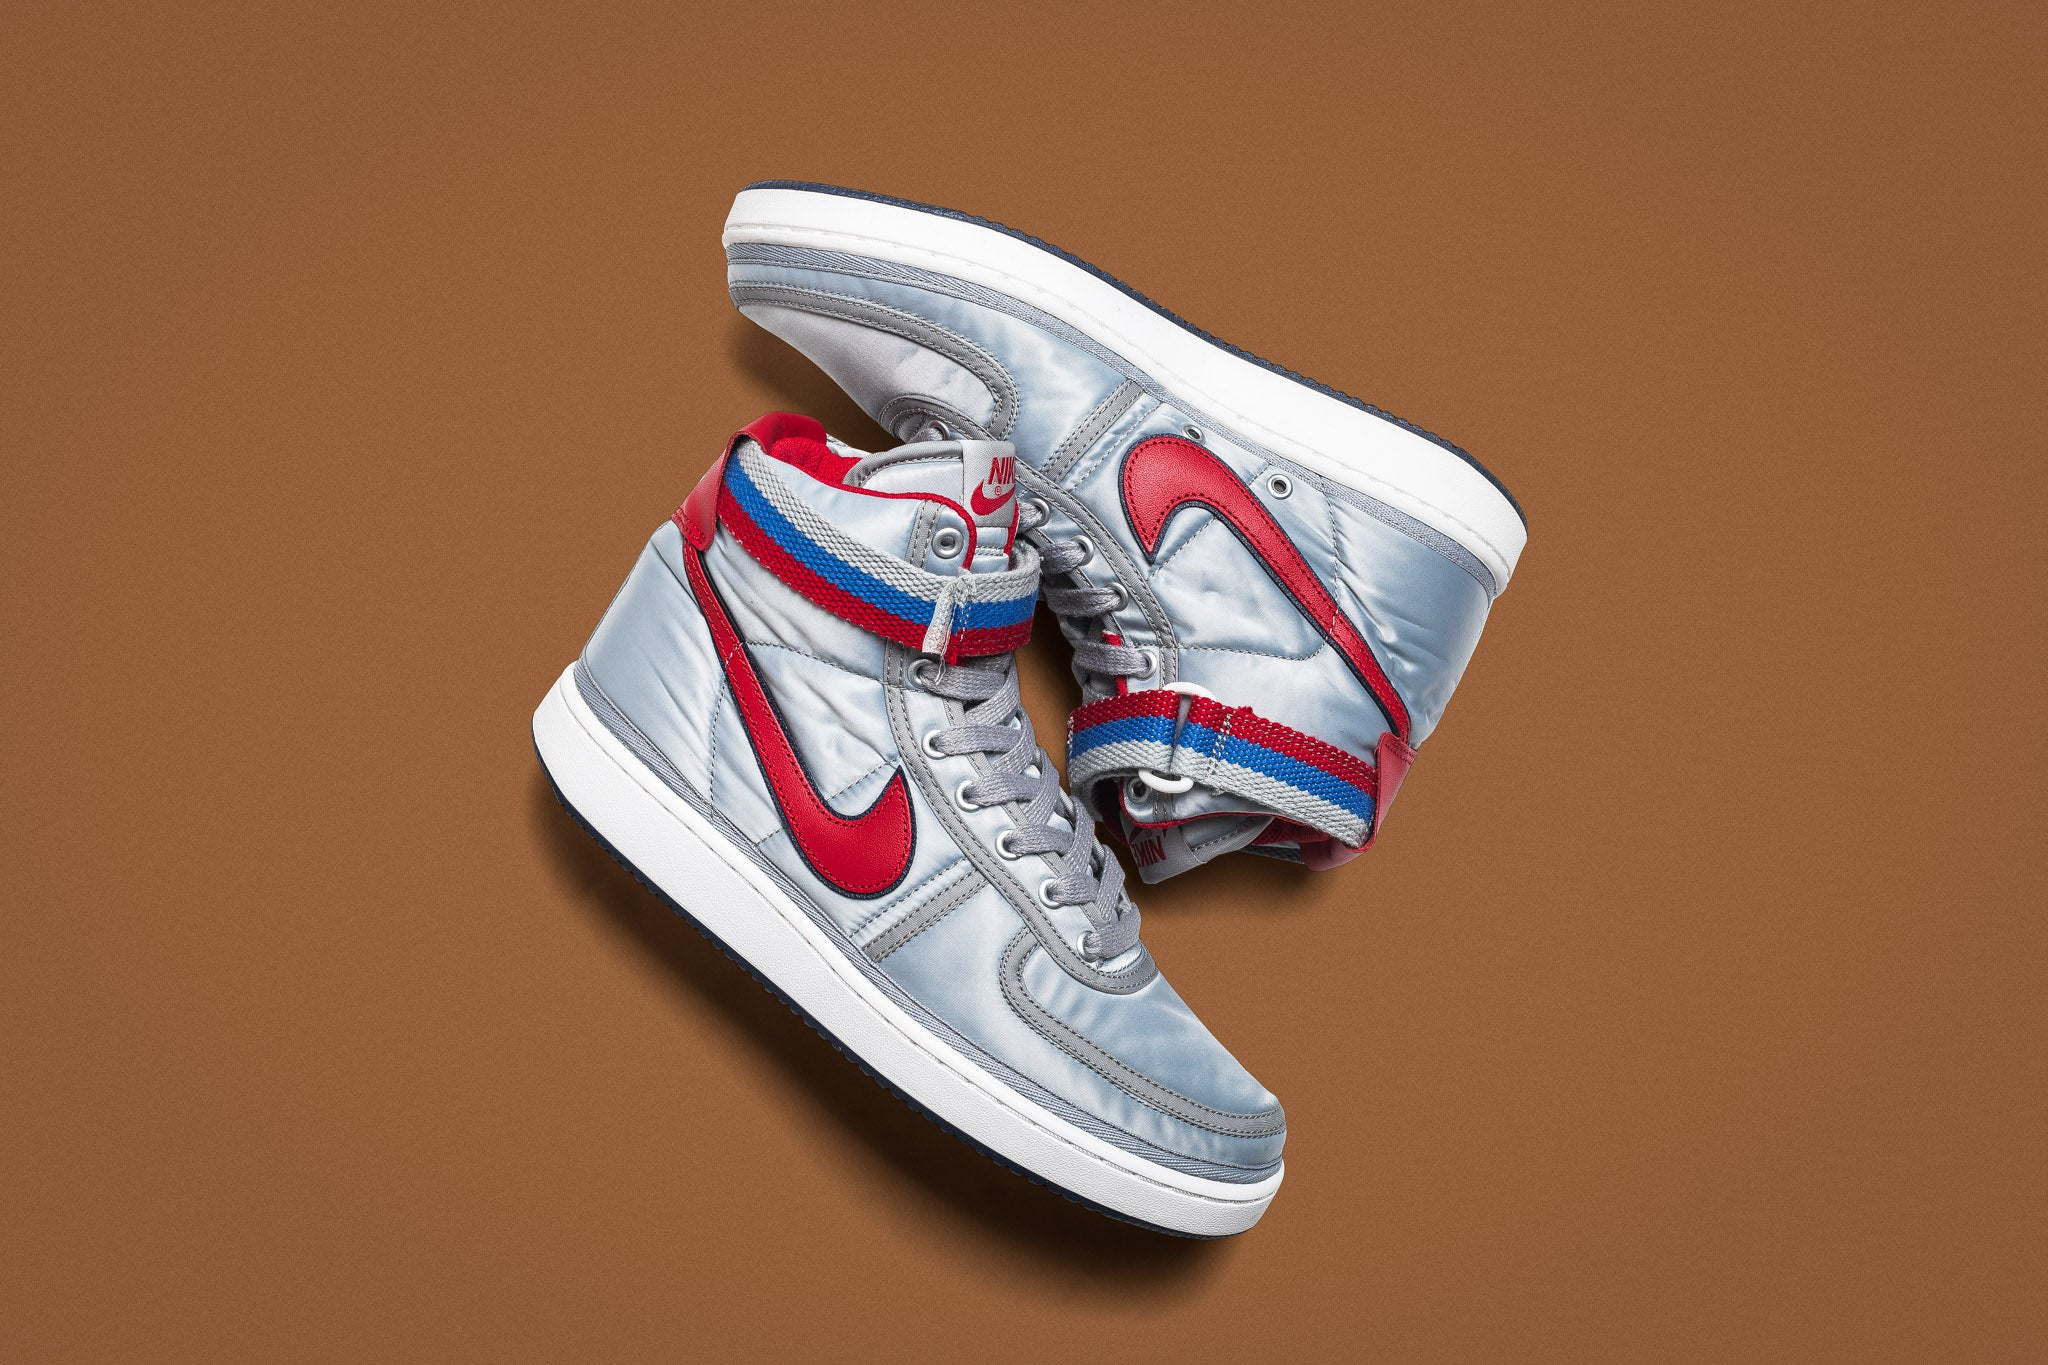 brand new 35194 6eed5 The Nike Vandal High Supreme QS comes back with the bold silver, blue and  red original colourway for the full 80s retro return. Full-on nylon uppers  in a ...